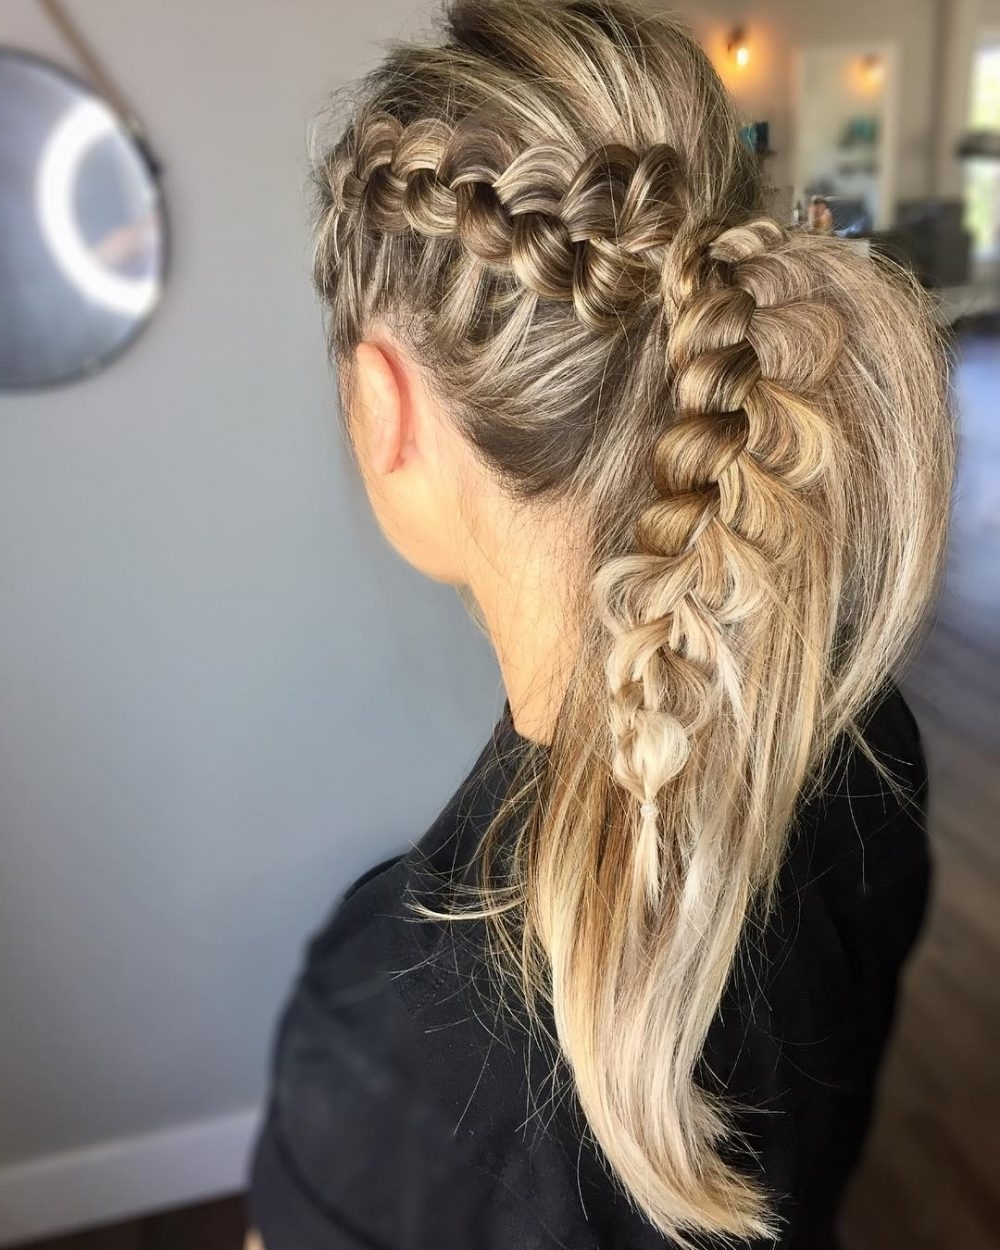 Trendy Wavy Free Flowing Messy Ponytail Hairstyles Regarding 38 Ridiculously Cute Hairstyles For Long Hair (Popular In 2018) (View 18 of 20)